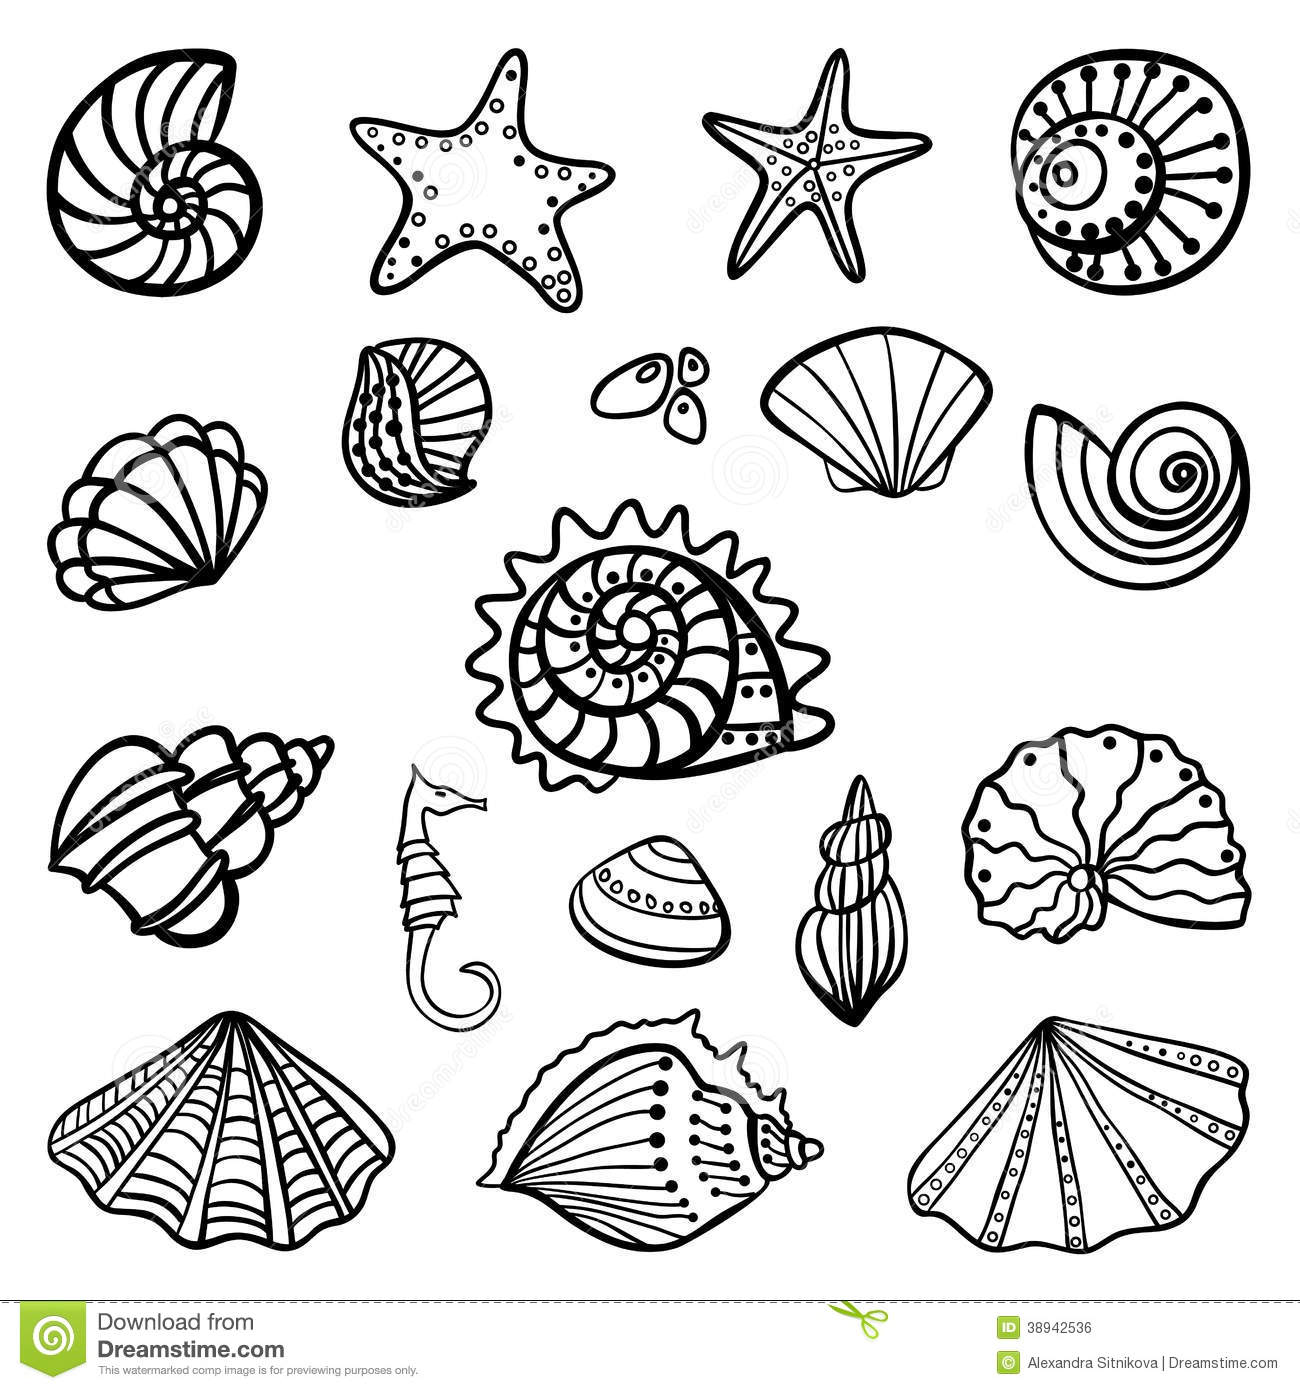 shells coloring page beach shells coloring pages download and print for free